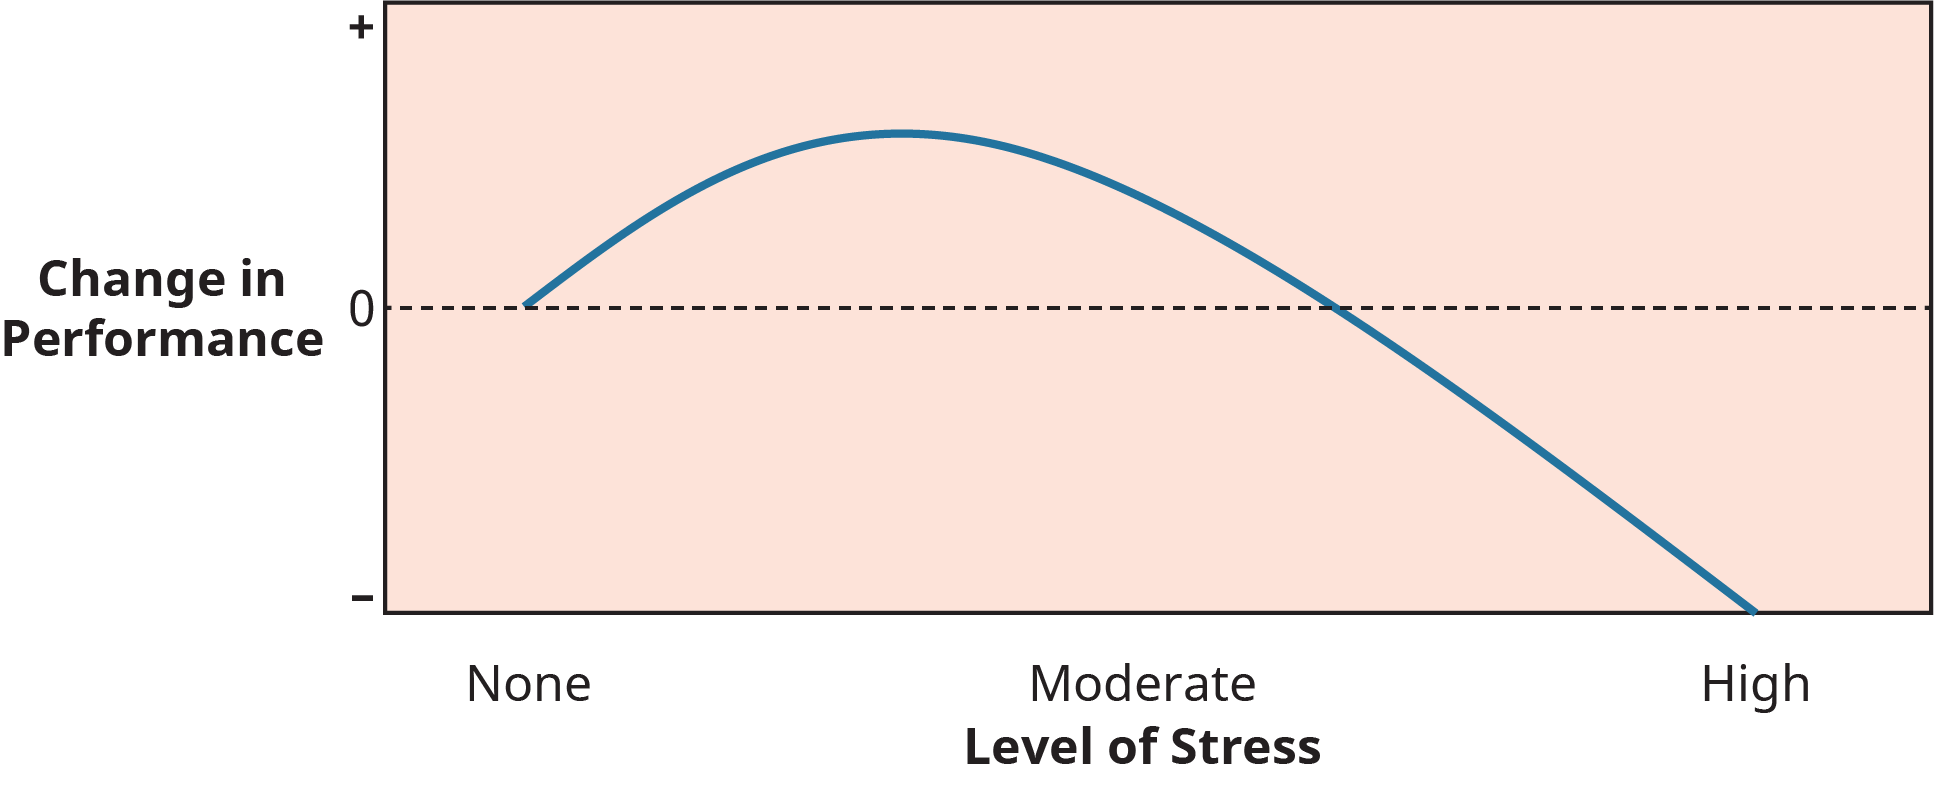 A graph depicts the relationship between stress and job performance.